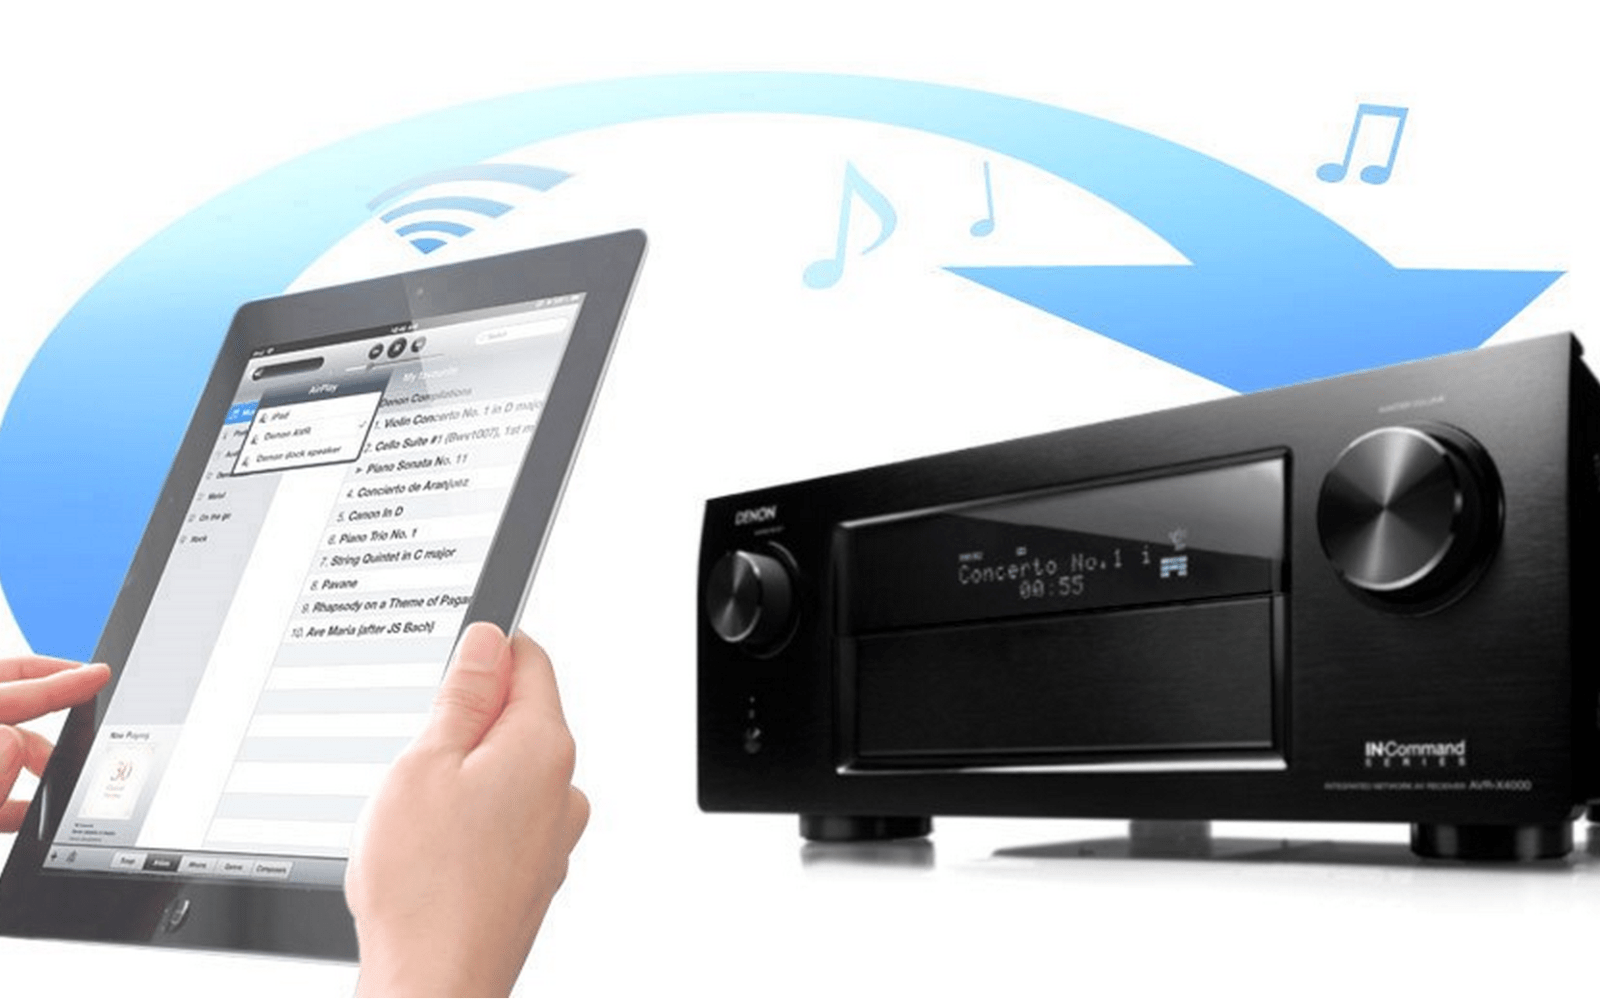 Denon launches 4K 'AVR-X4000' AV receiver with AirPlay